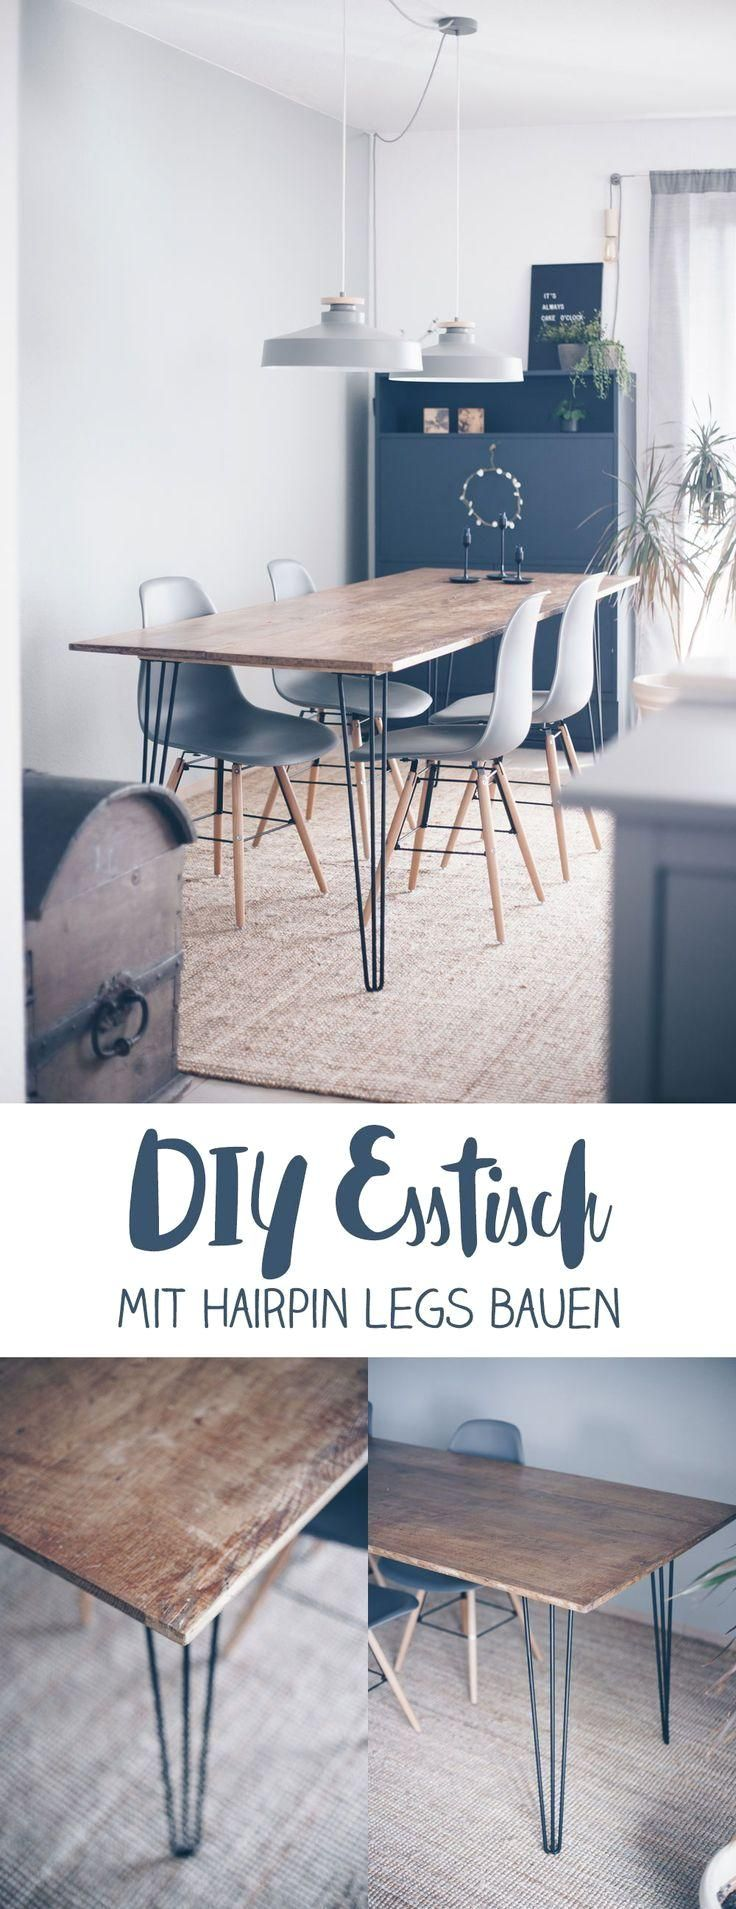 Photo of Make yourself a DIY dining table with Hairpin Legs – build your own furniture – DIY idea